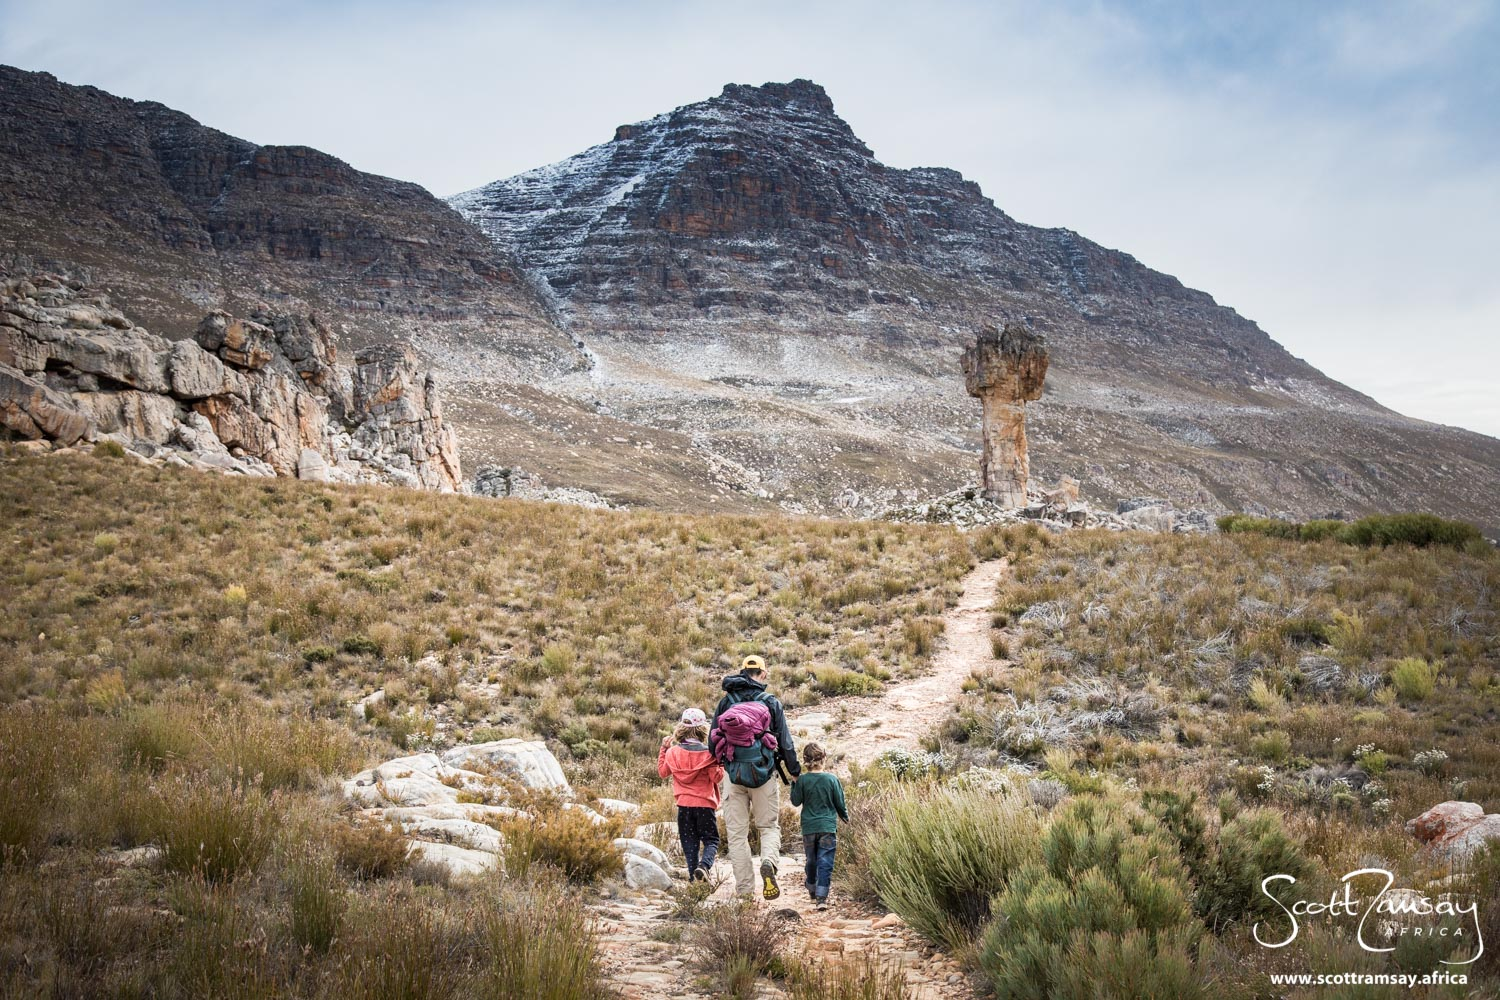 Friends Steve, Azara and Gabriel Davis approaching the Maltese Cross, with Sneeuberg rising to almost 2 000 metres on the horizon. Note the sprinkling of snow - winters in the Cederberg can be cold!